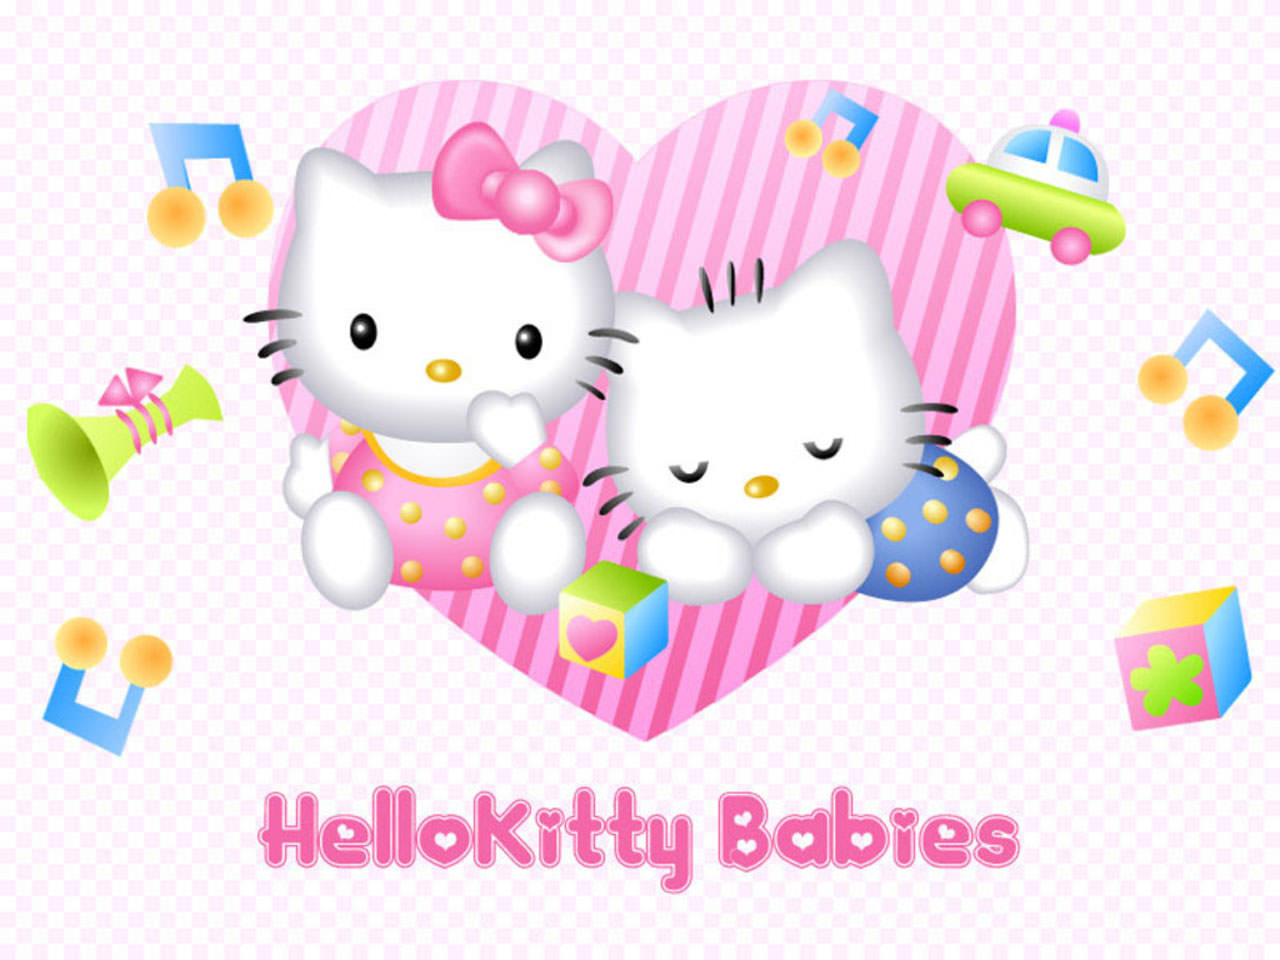 hi baby images 30 hello kitty backgrounds wallpapers images design 2480